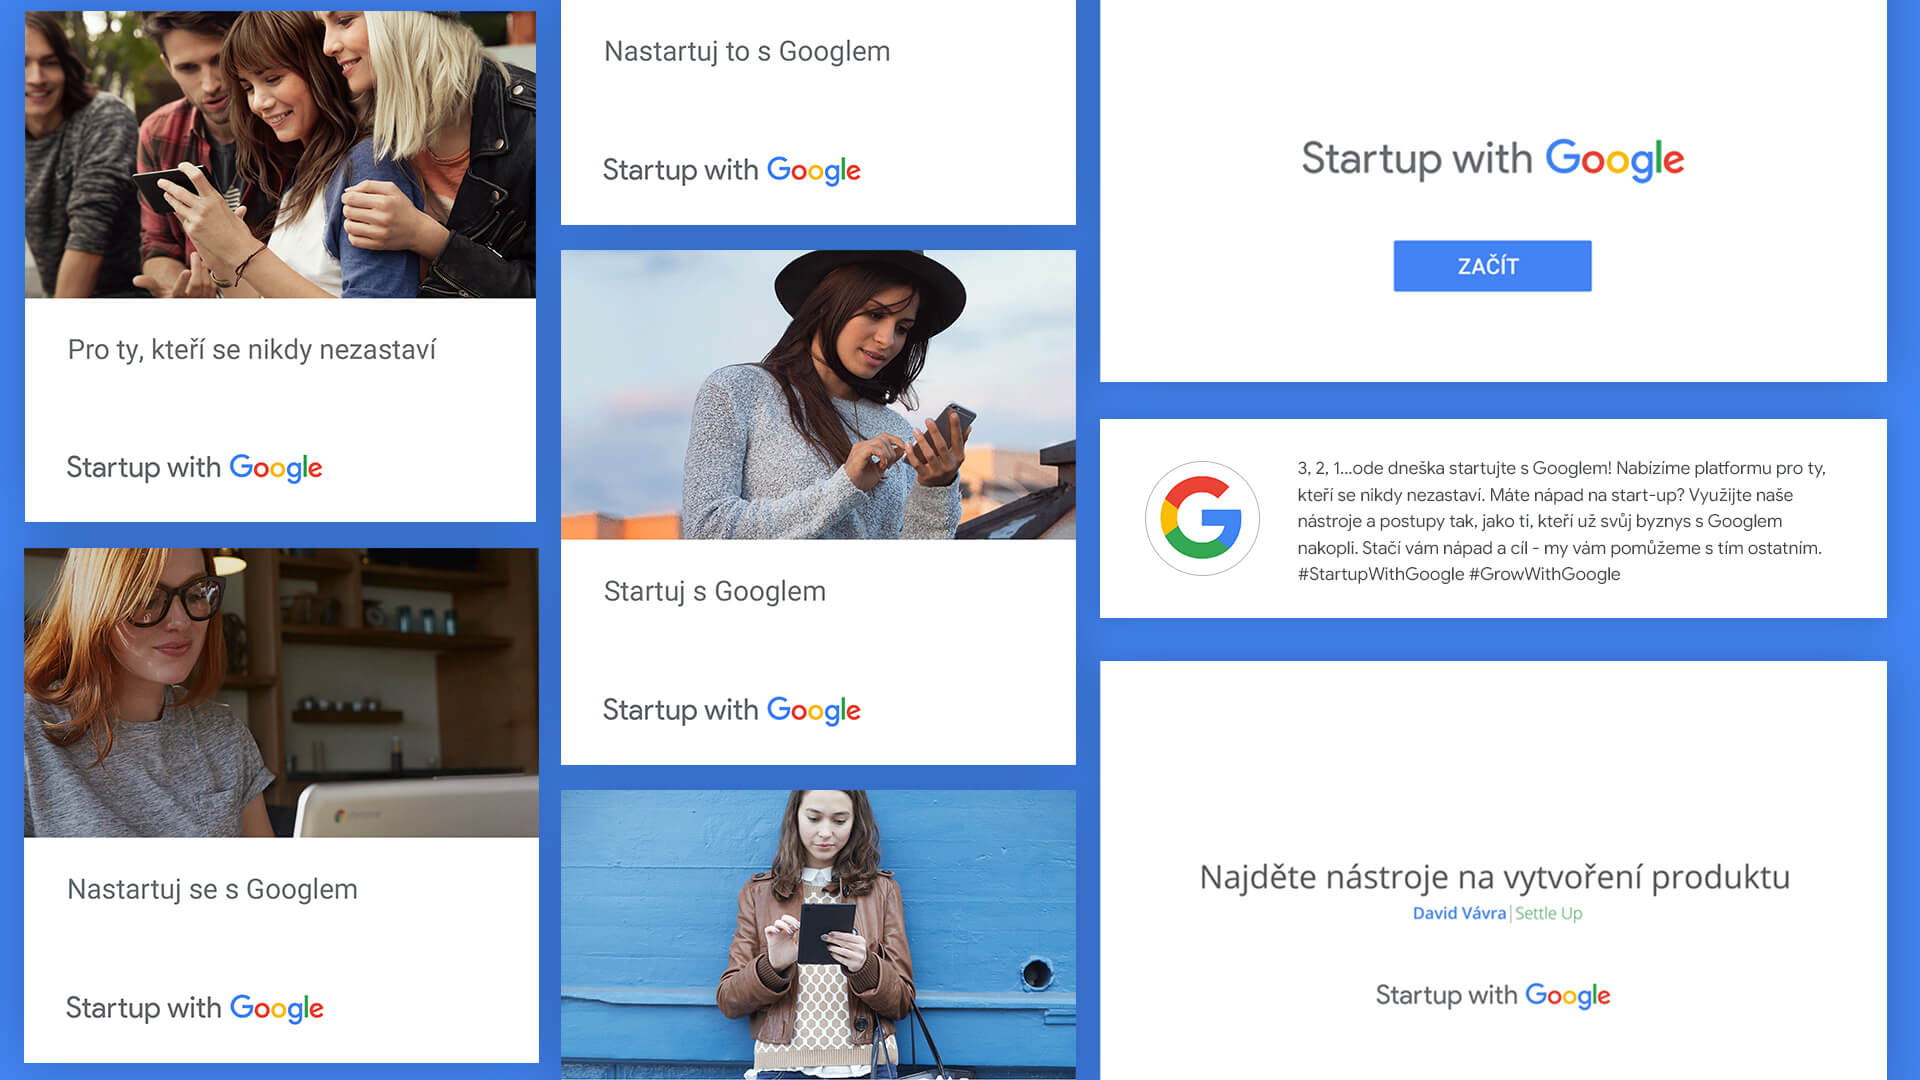 marcellacko-startup-with-google_01